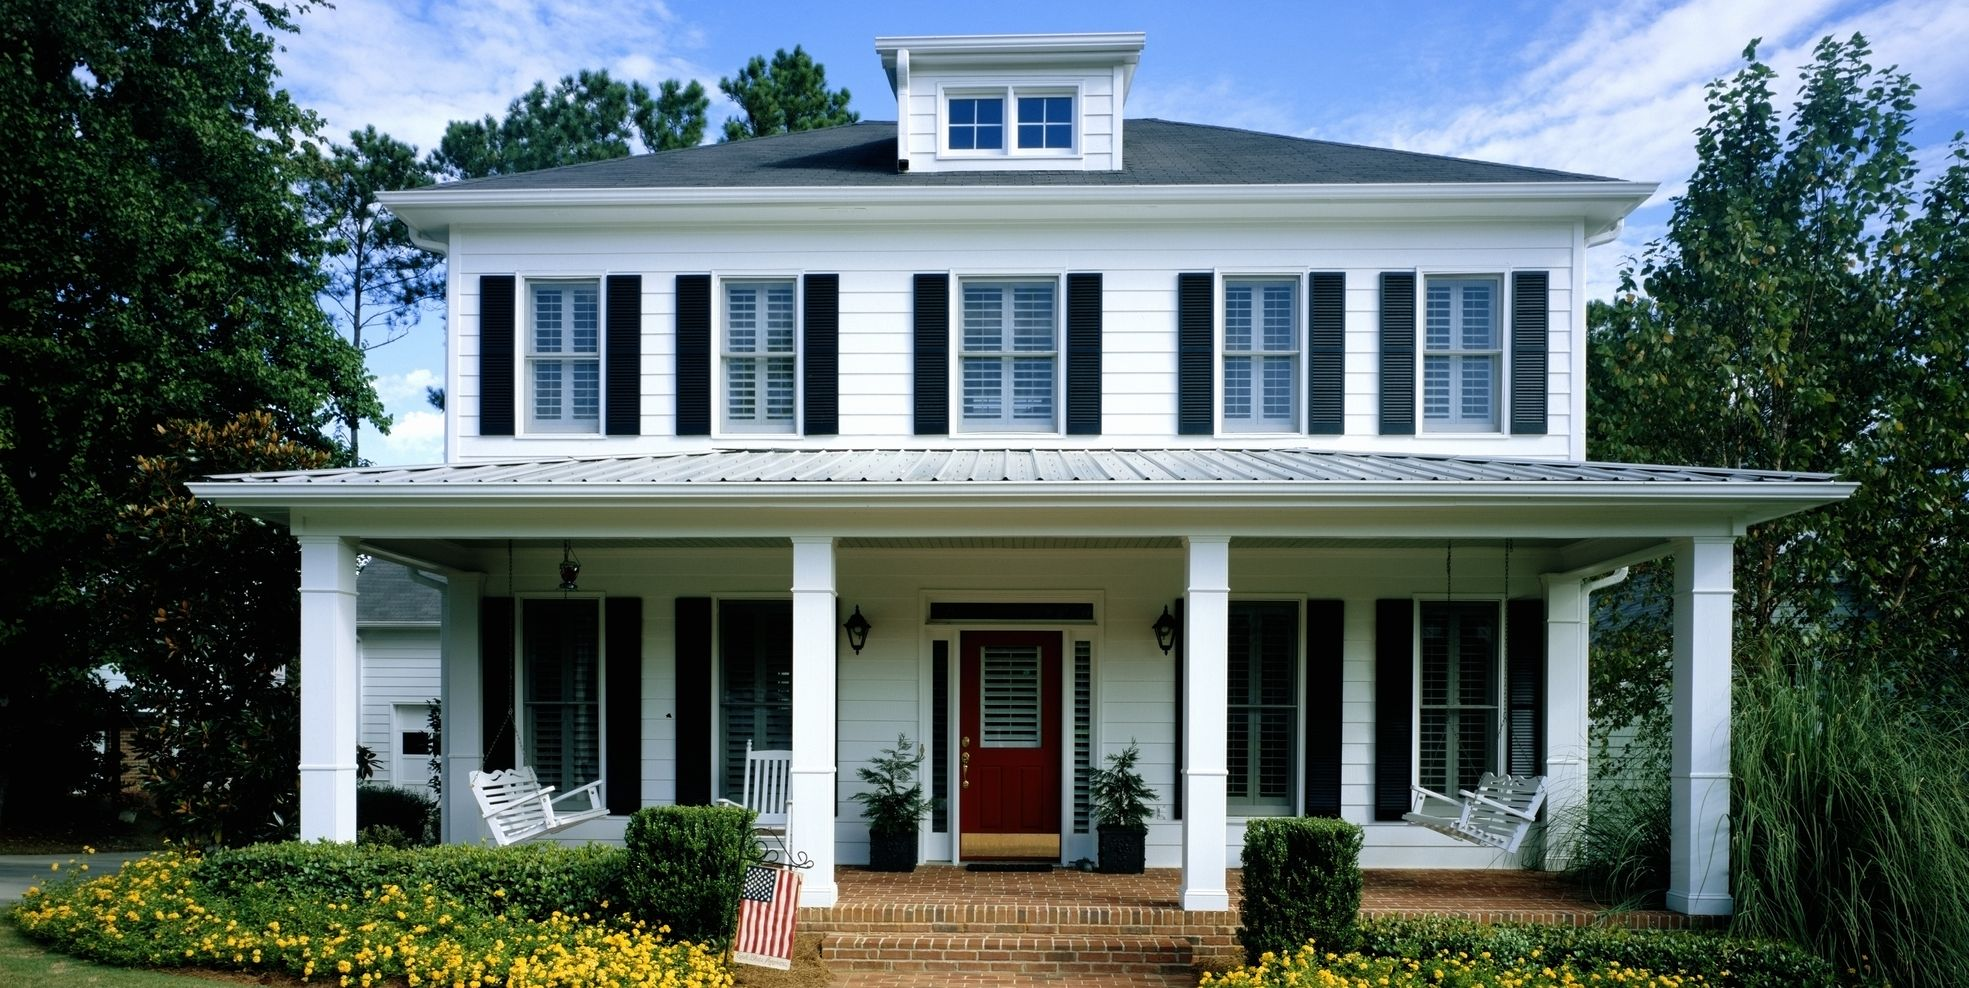 The One Paint Color That Can Increase the Value of Your Home by Thousands